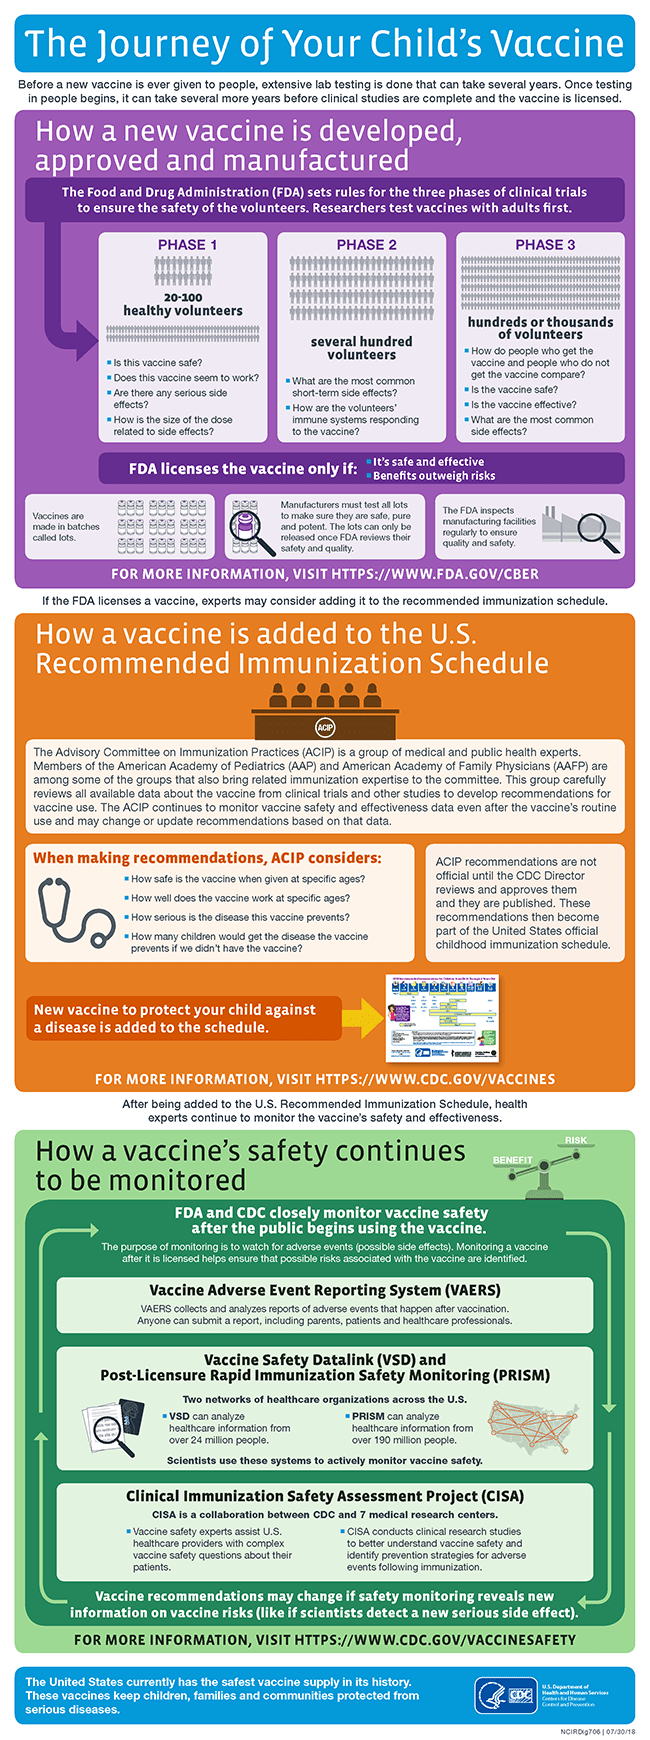 The Journey of Your Child's Vaccine (Infographic)   CDC